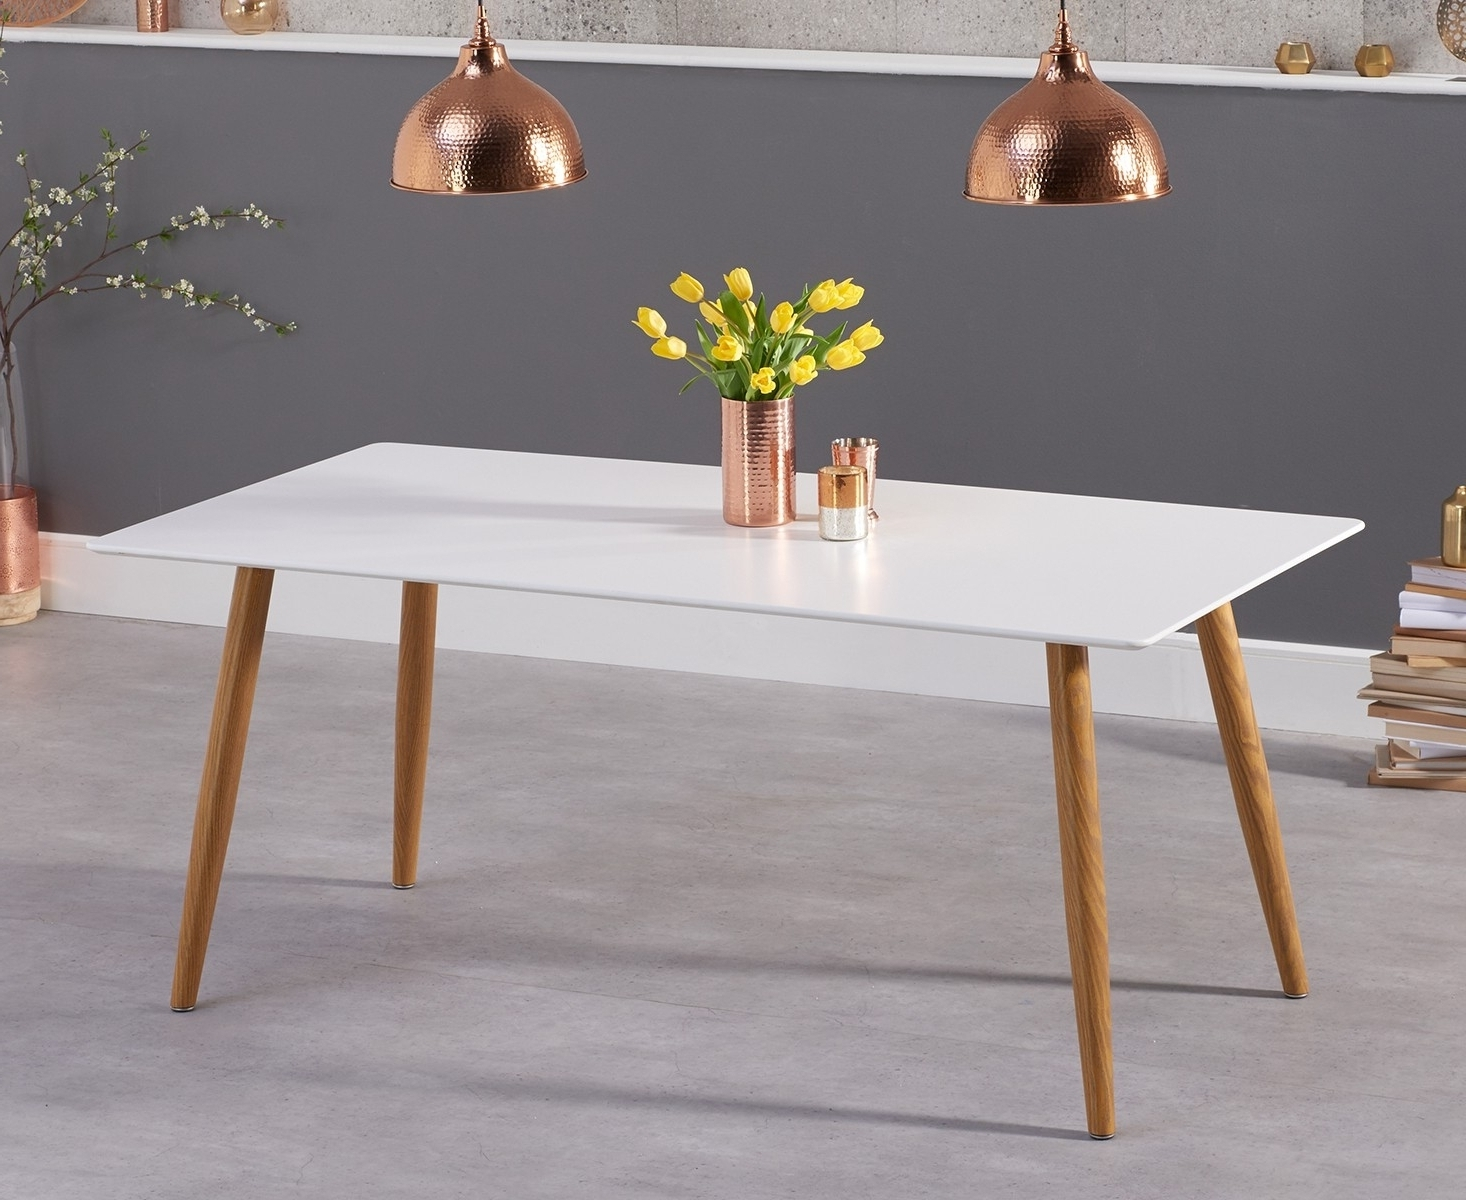 Favorite Buy Wessex Matt White 180Cm Dining Table The Furn Shop With 180Cm Dining Tables (View 7 of 25)